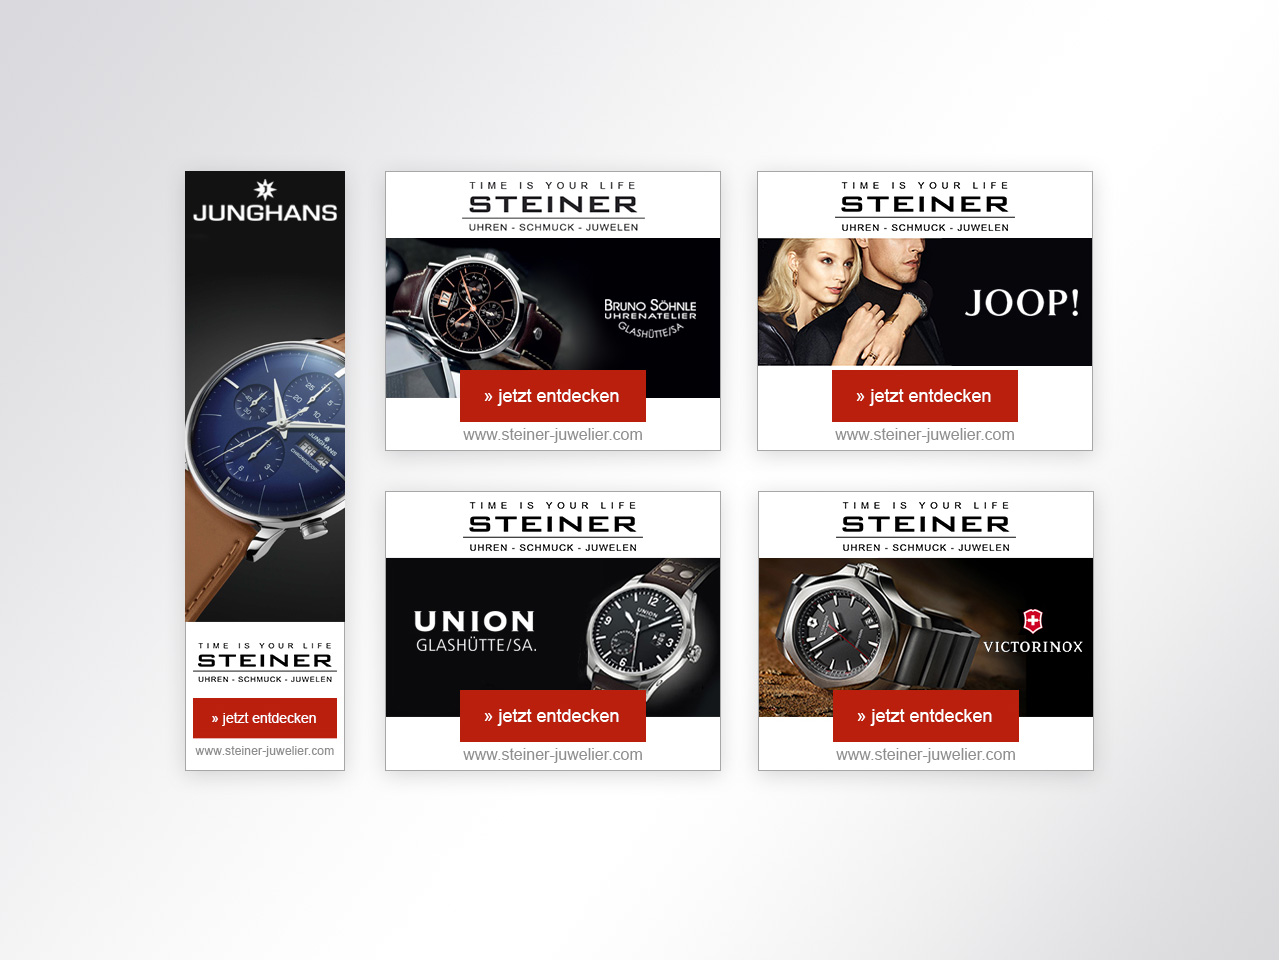 Online Marketing Juwelier Steiner